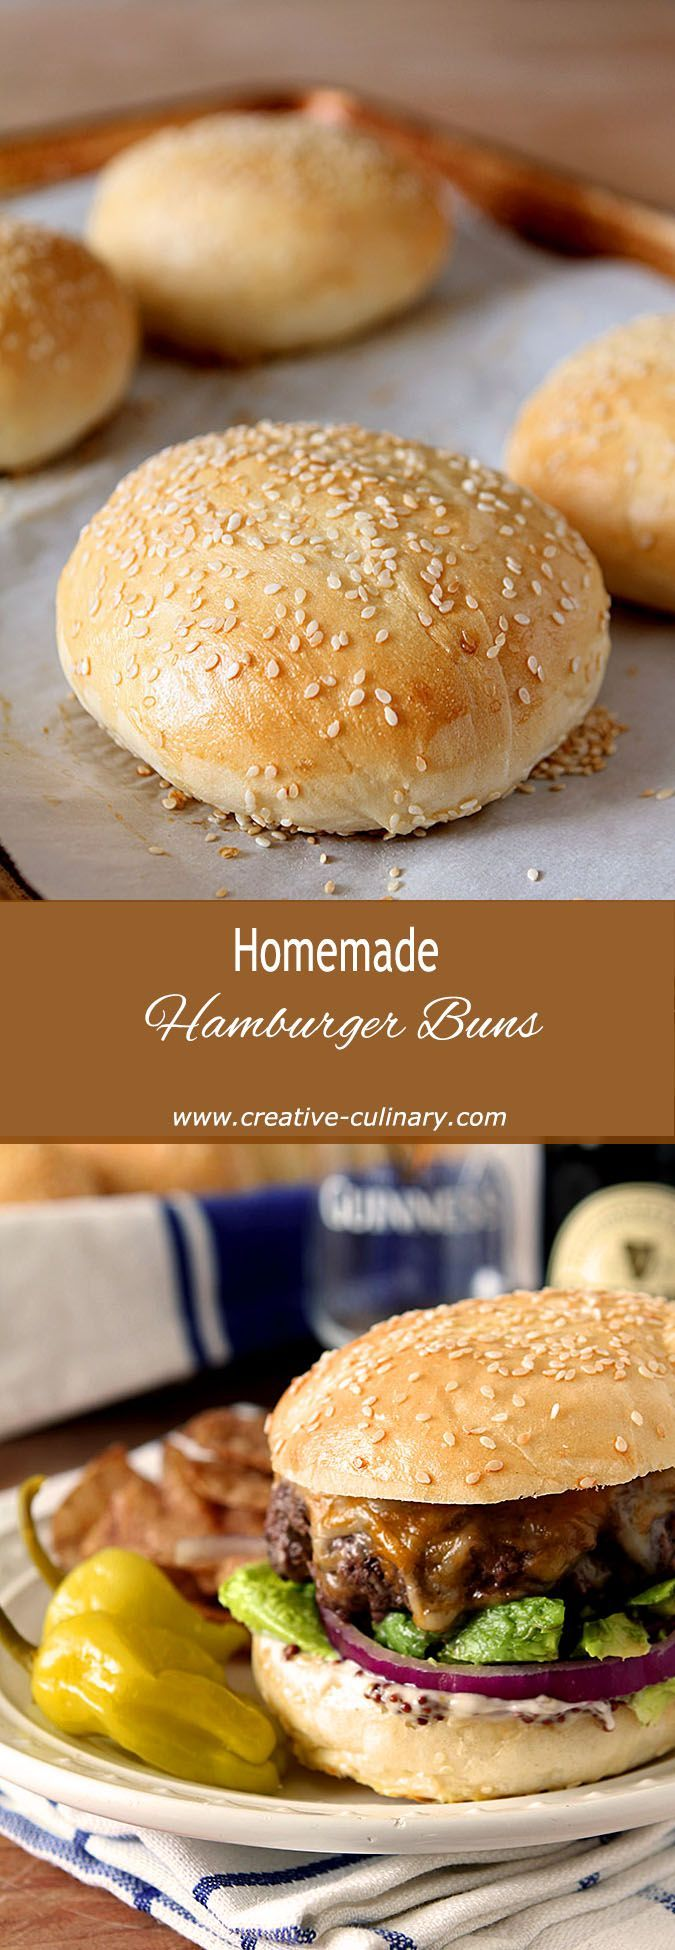 Homemade Hamburger Buns if you want that special burger to go over the top! via @creativculinary